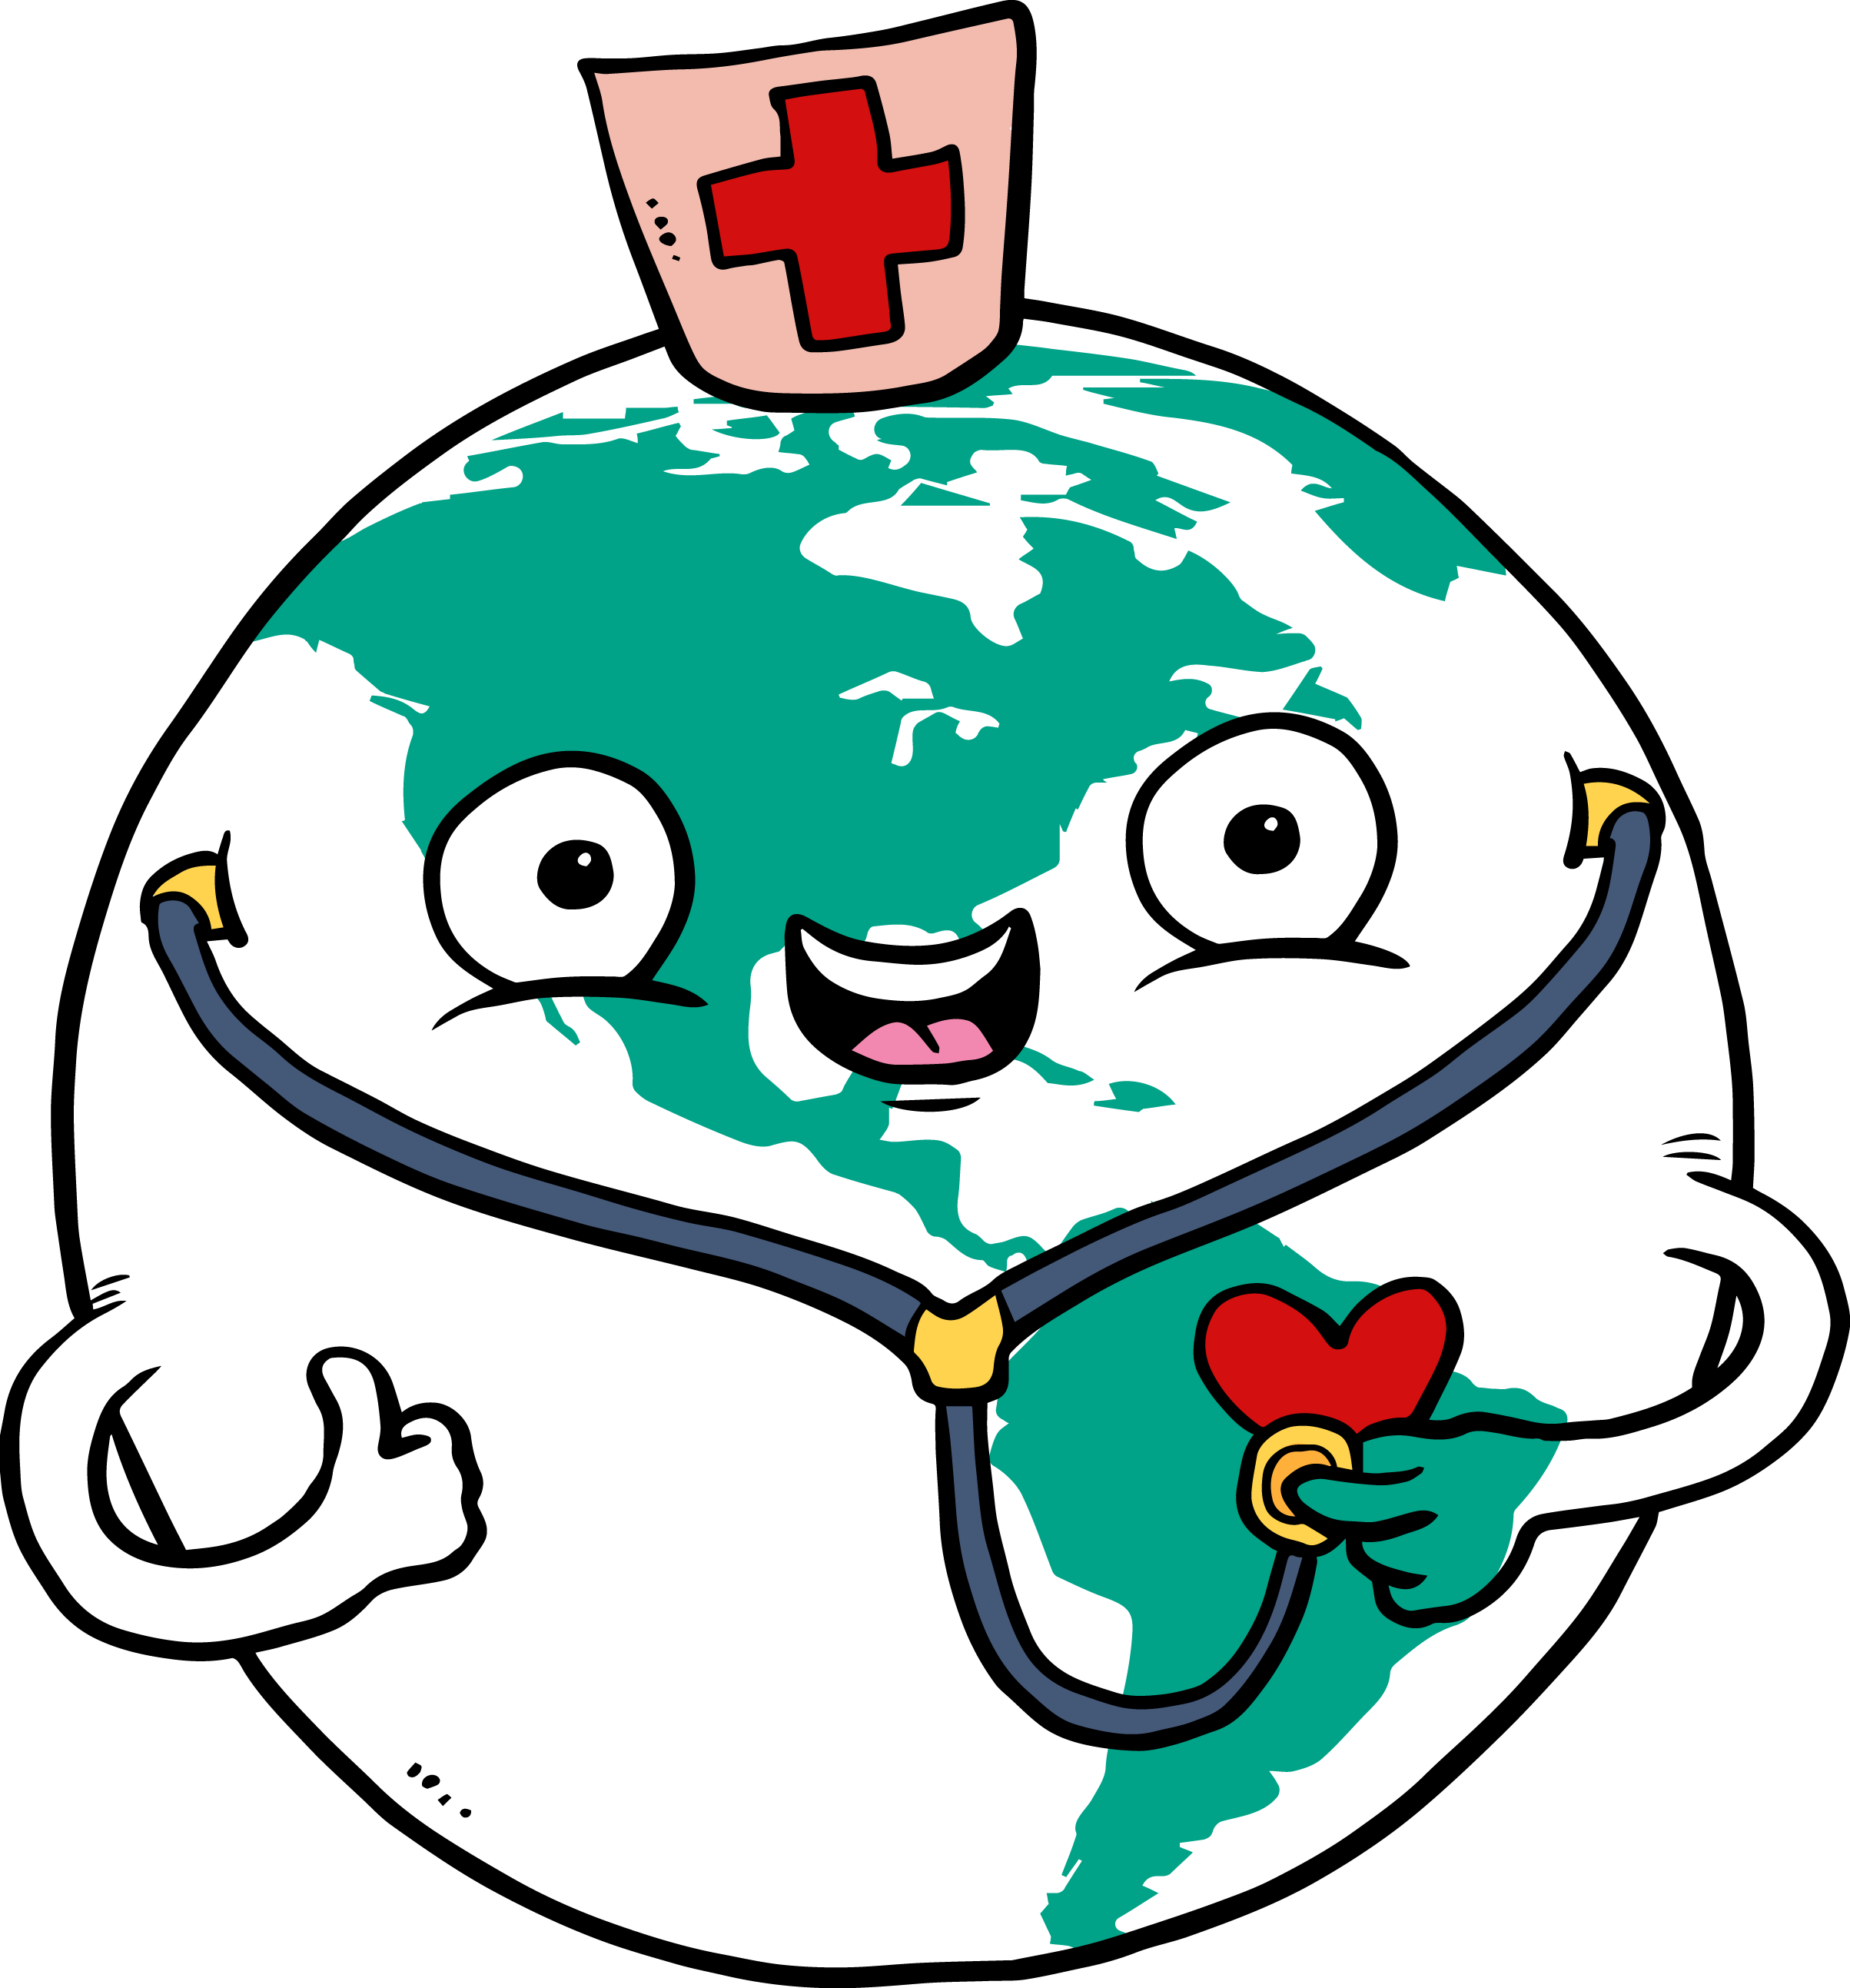 stethoscope-clipart-nursing-stethoscope-9.png